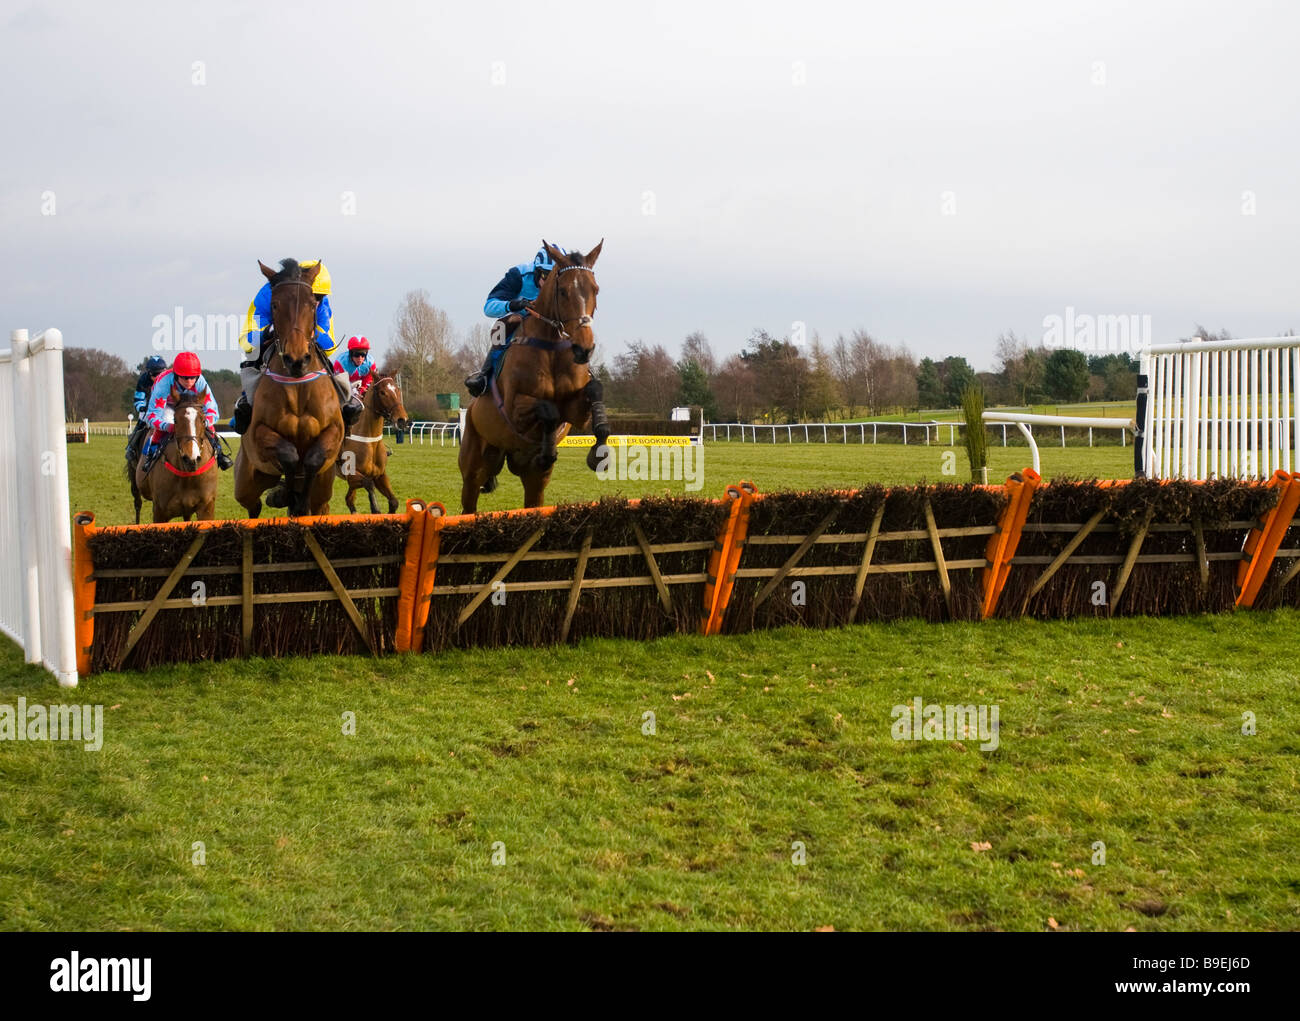 A hurdle race at Market Rasen races, Lincolnshire, England Stock Photo